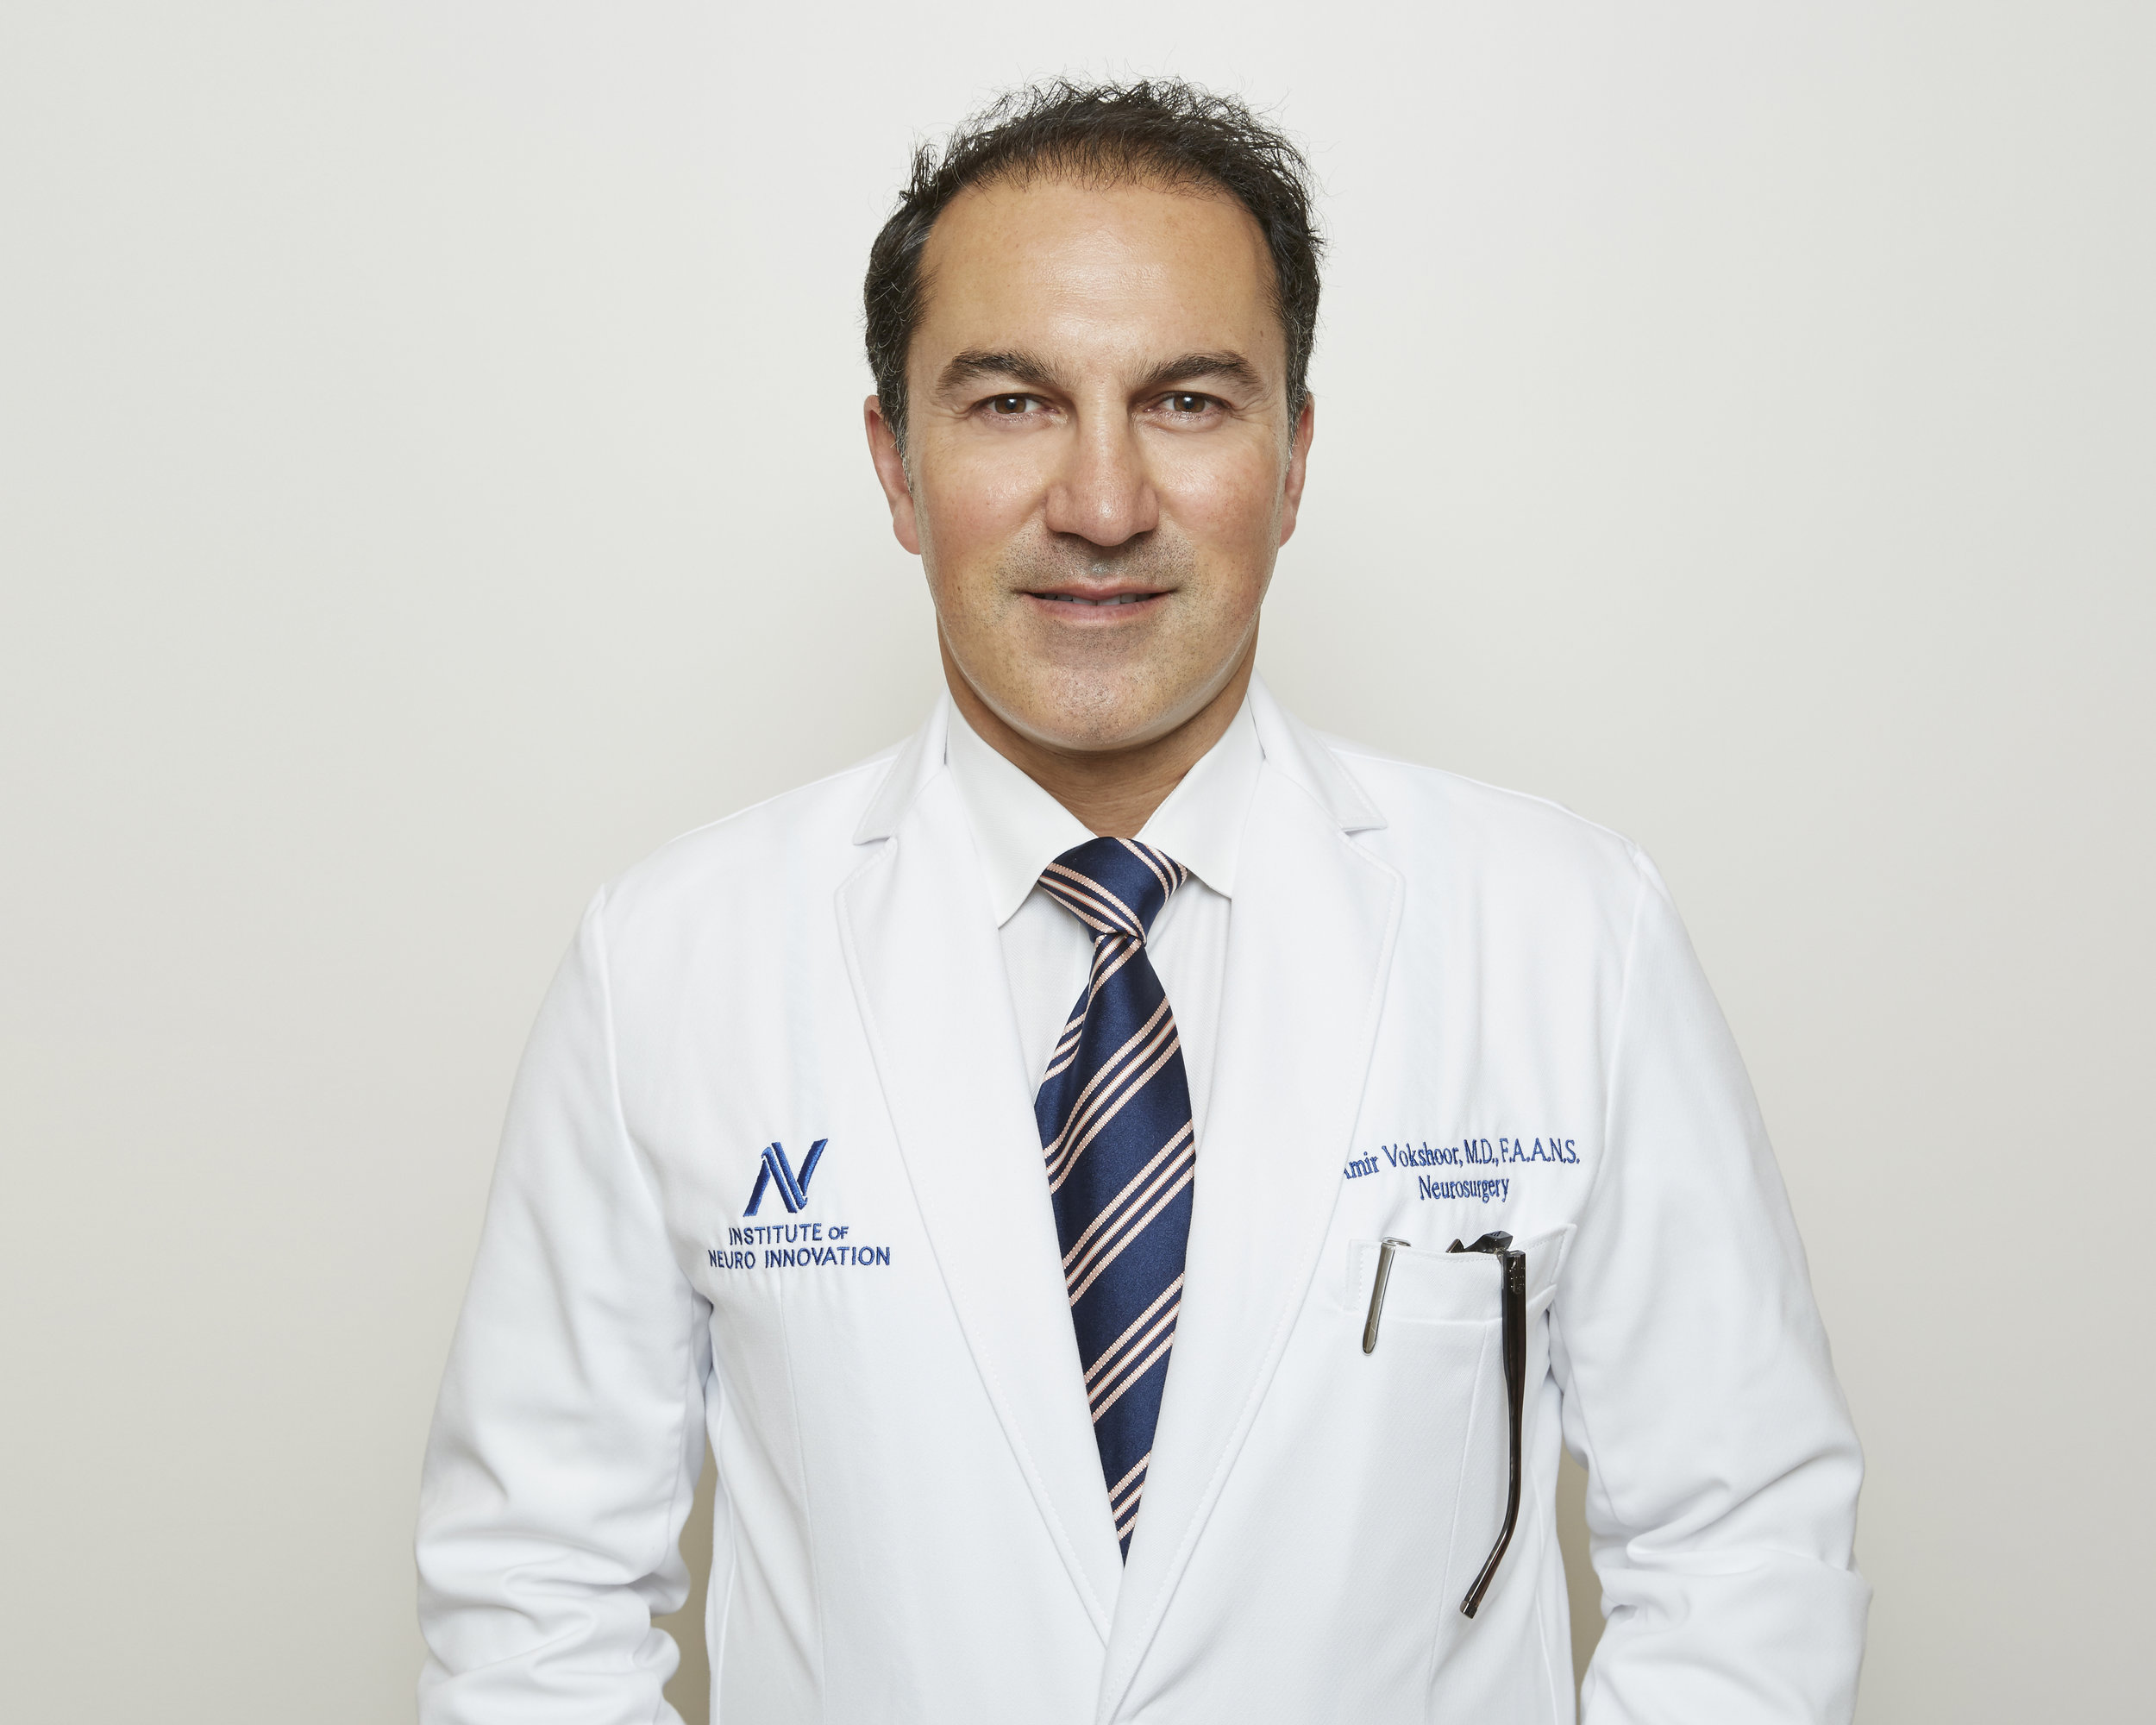 Who we are - Learn about Neurovella from our founder, Amir Vokshoor, MD, neurosurgeon. Click on the video below!